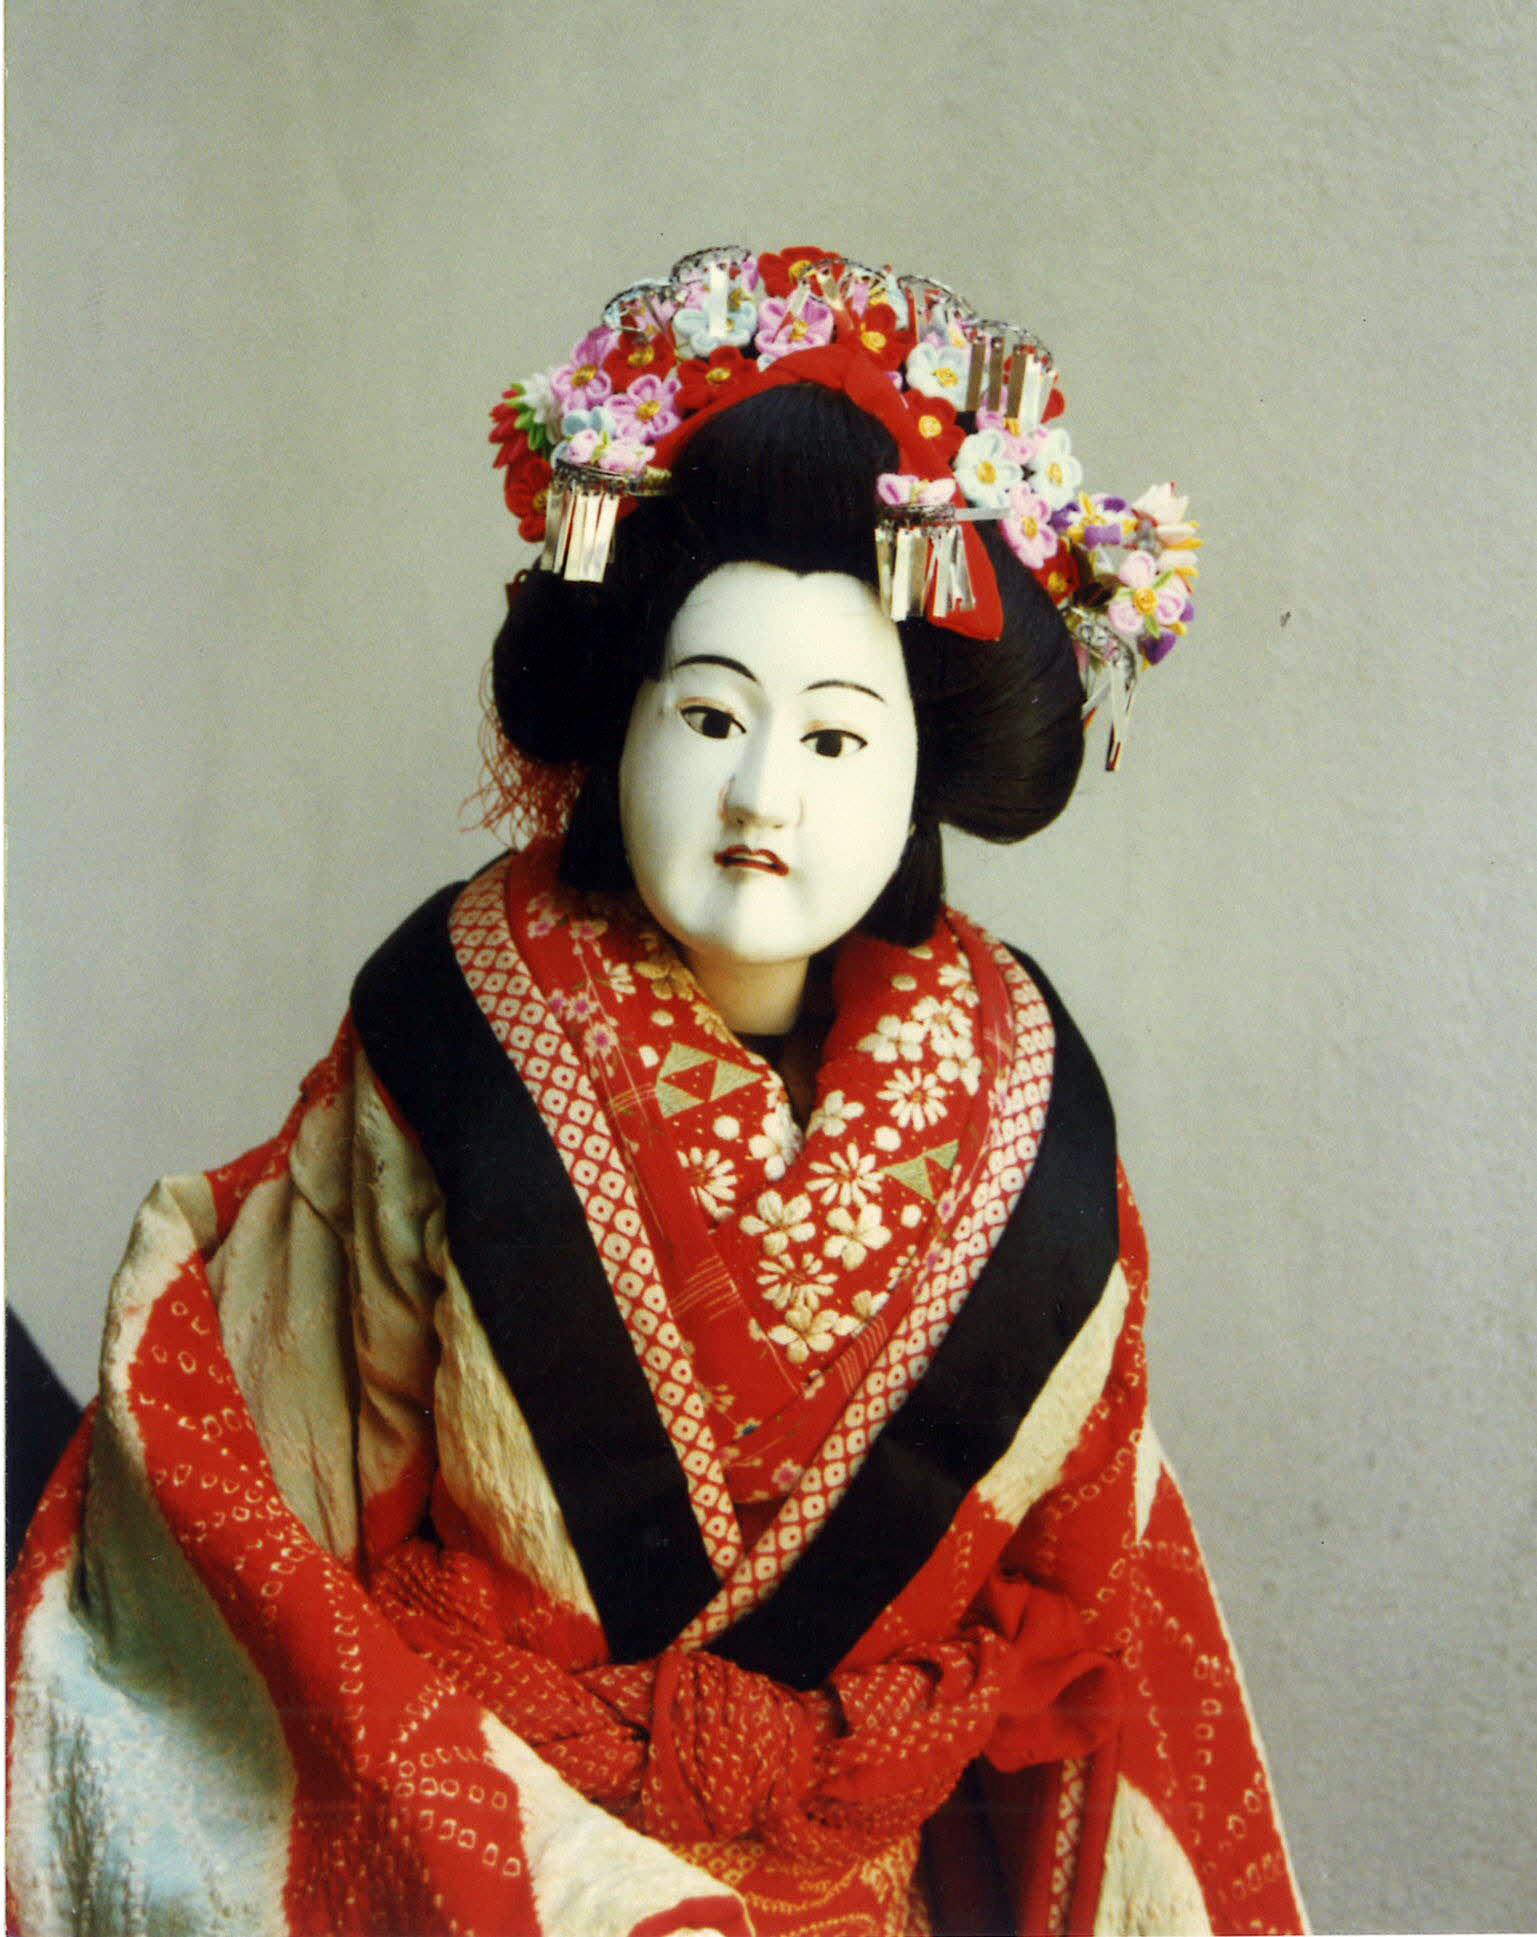 A photo of a lifelike puppet wearing red and gold ornate clothes with a formal Japanese hairstyle.